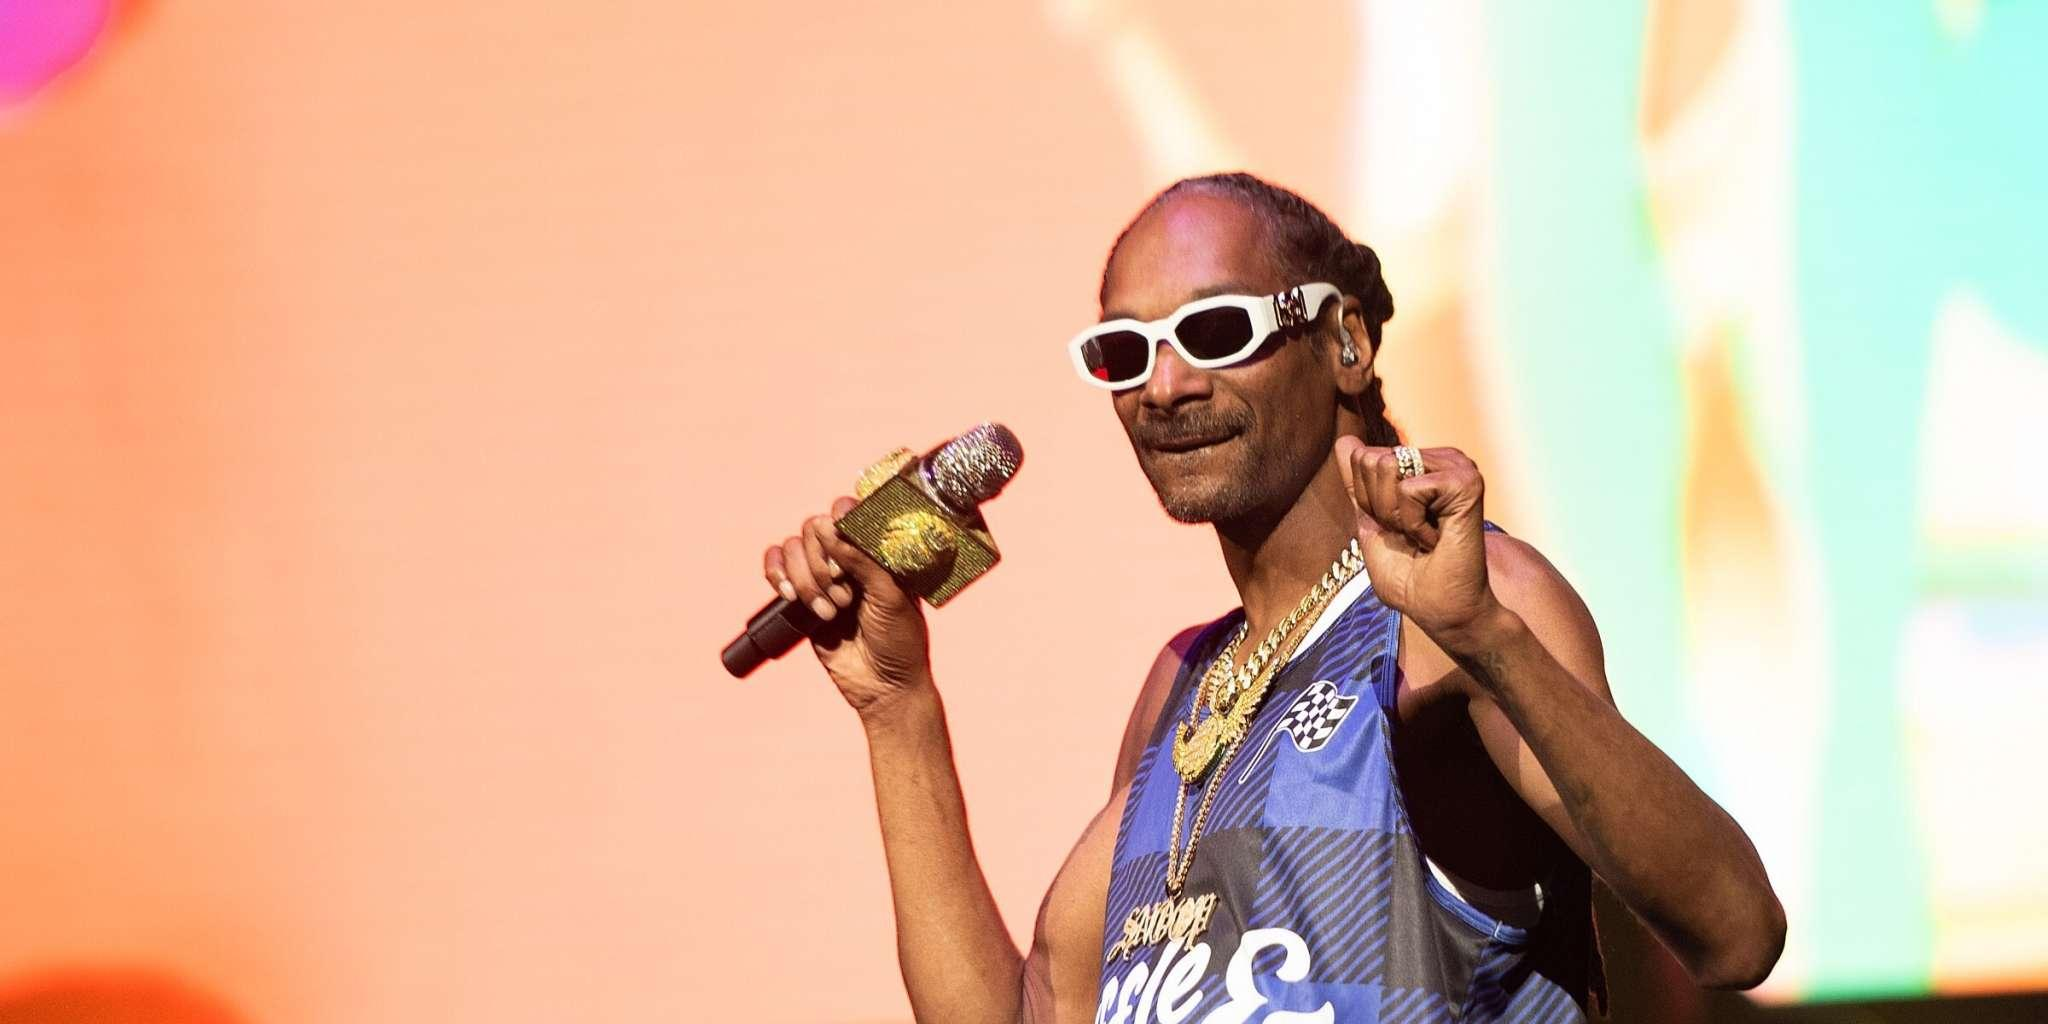 Snoop Dogg Shares An Update About His Mother's Health